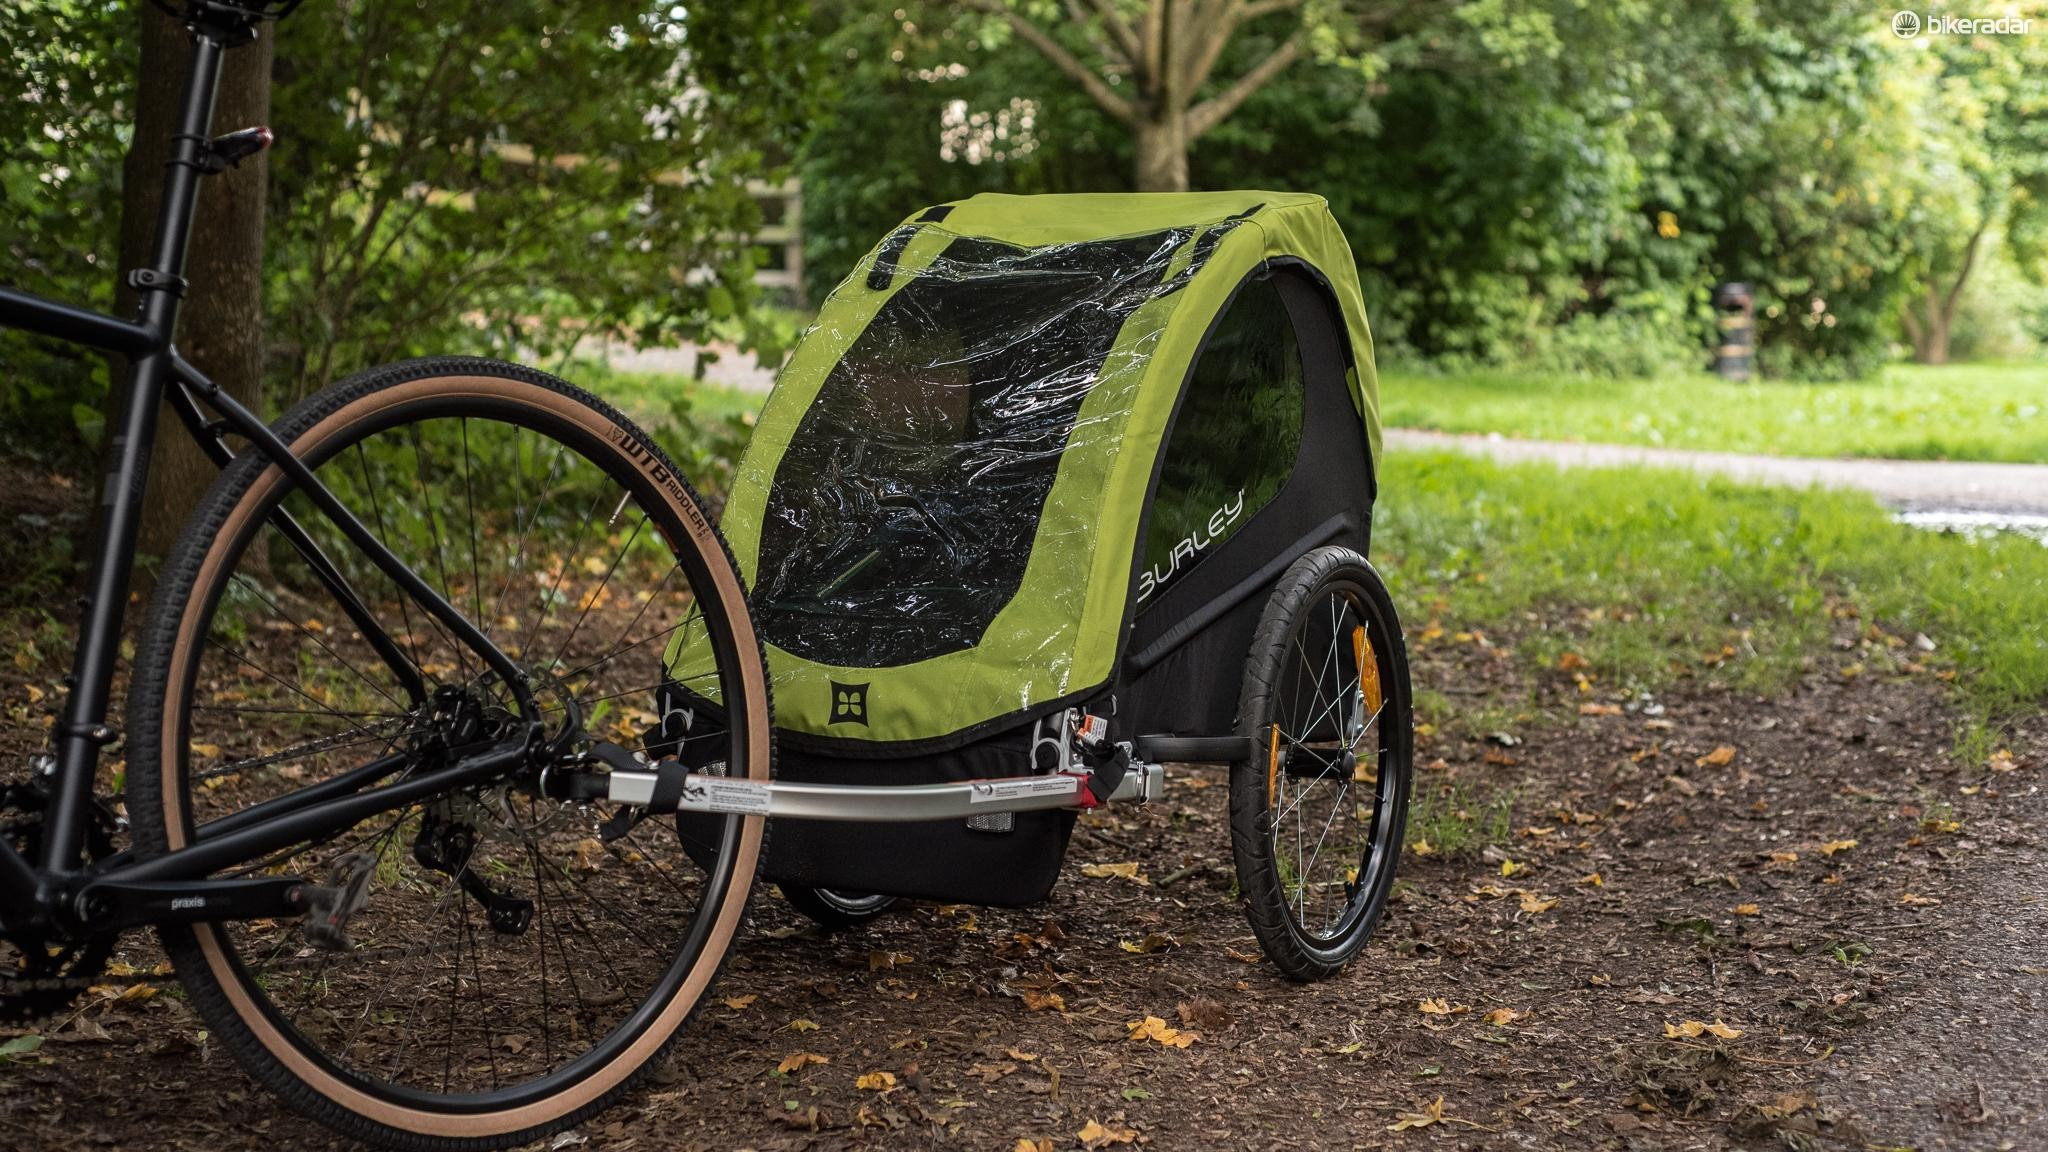 The Burly Minnow is a smart little single-seat trailer for kids